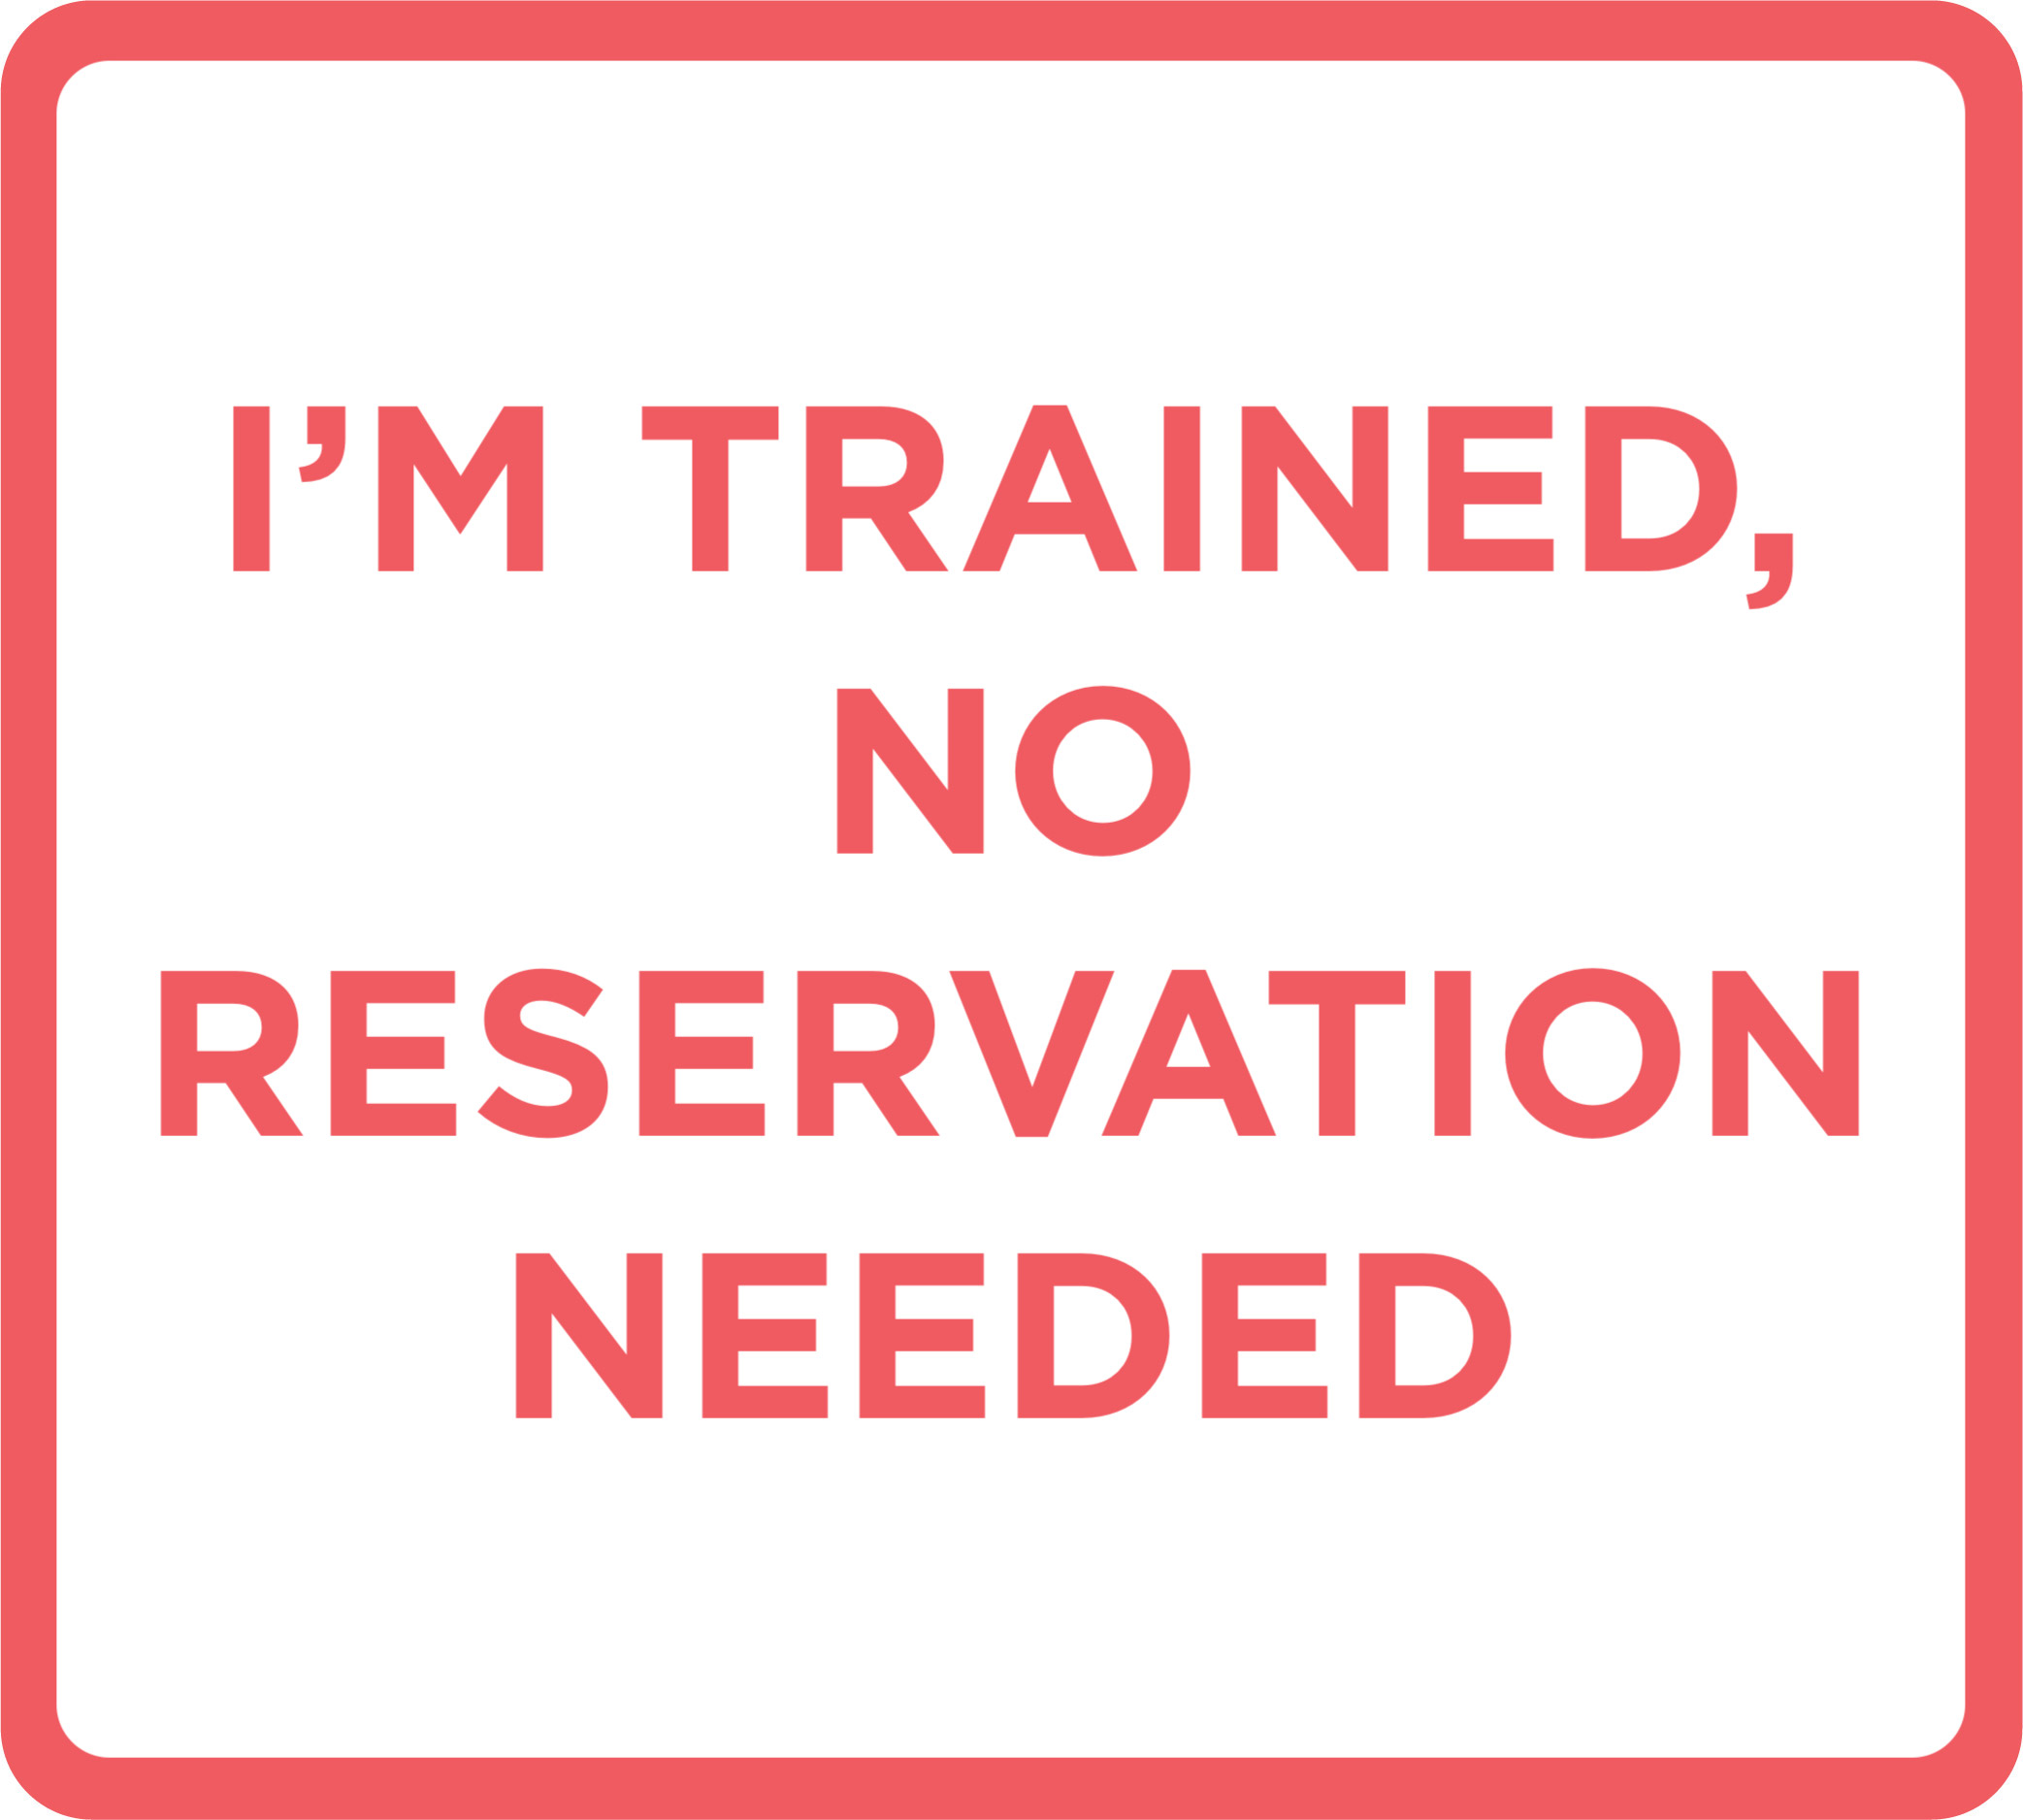 I'm trained, no reservation needed.